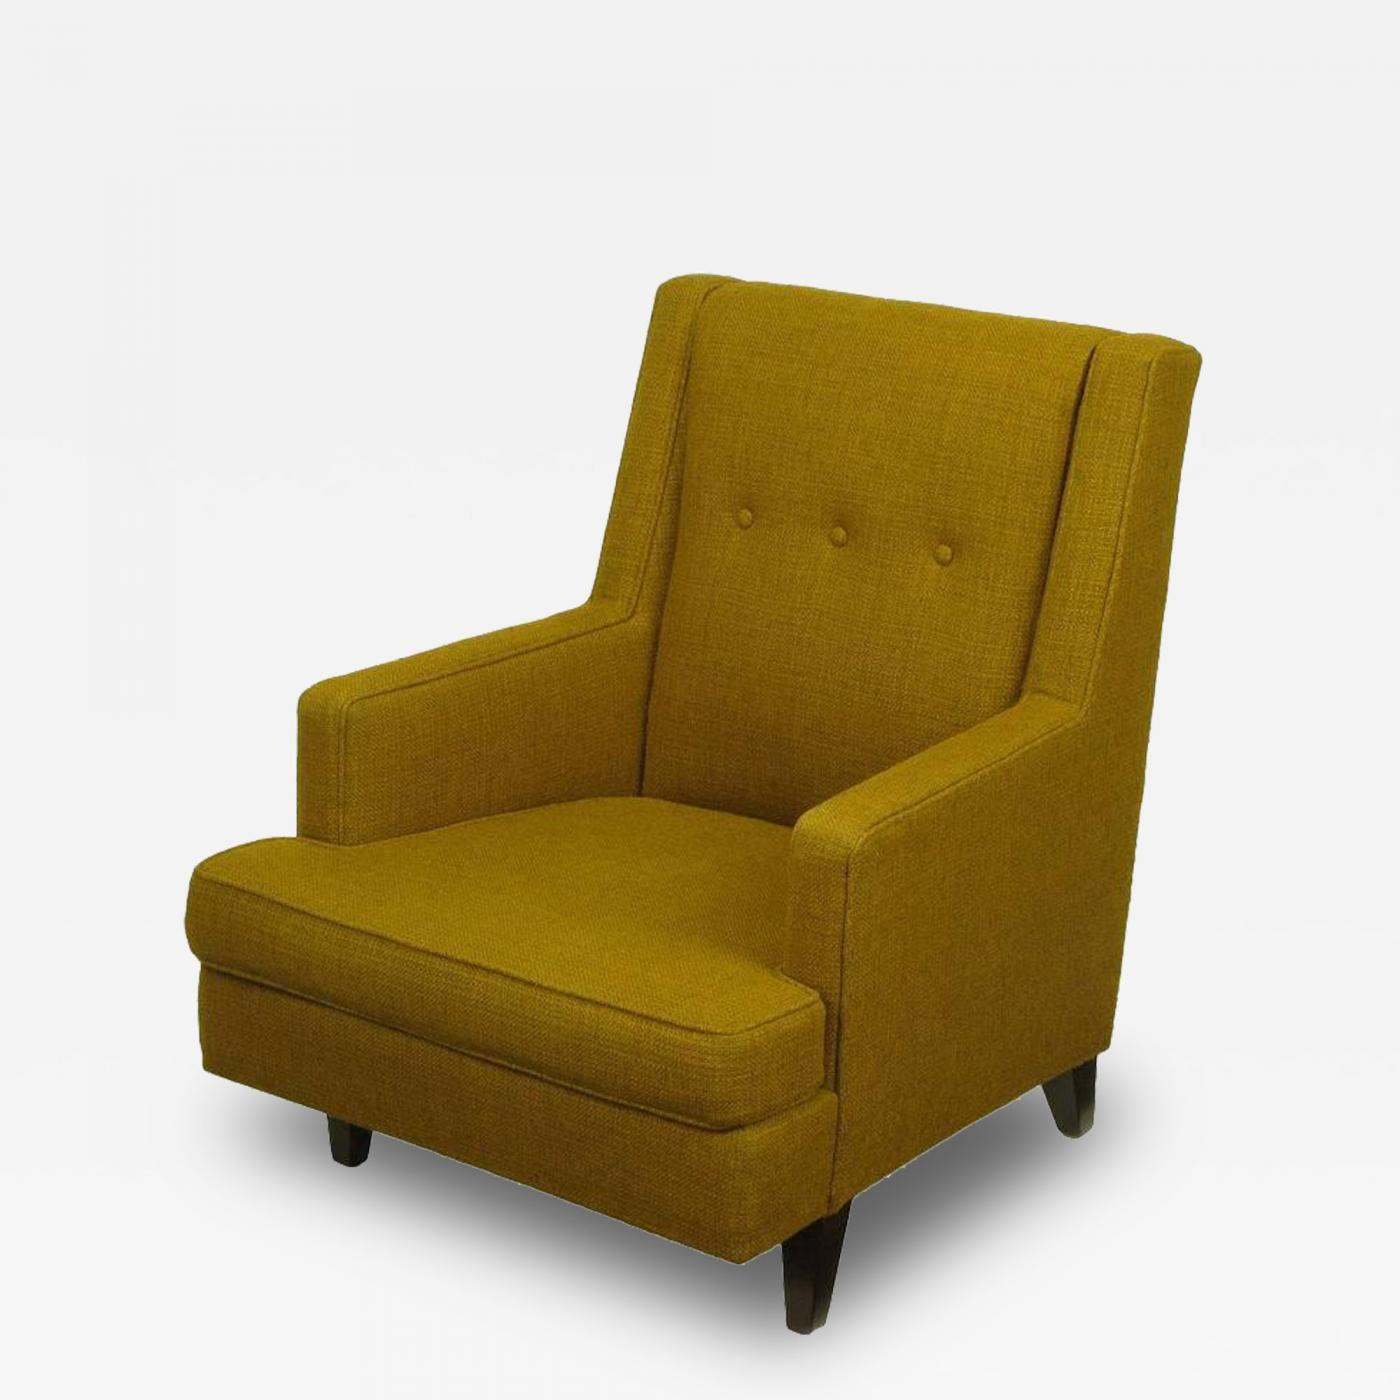 Edward Wormley Edward Wormley Lounge Chair in Moss Green Wool